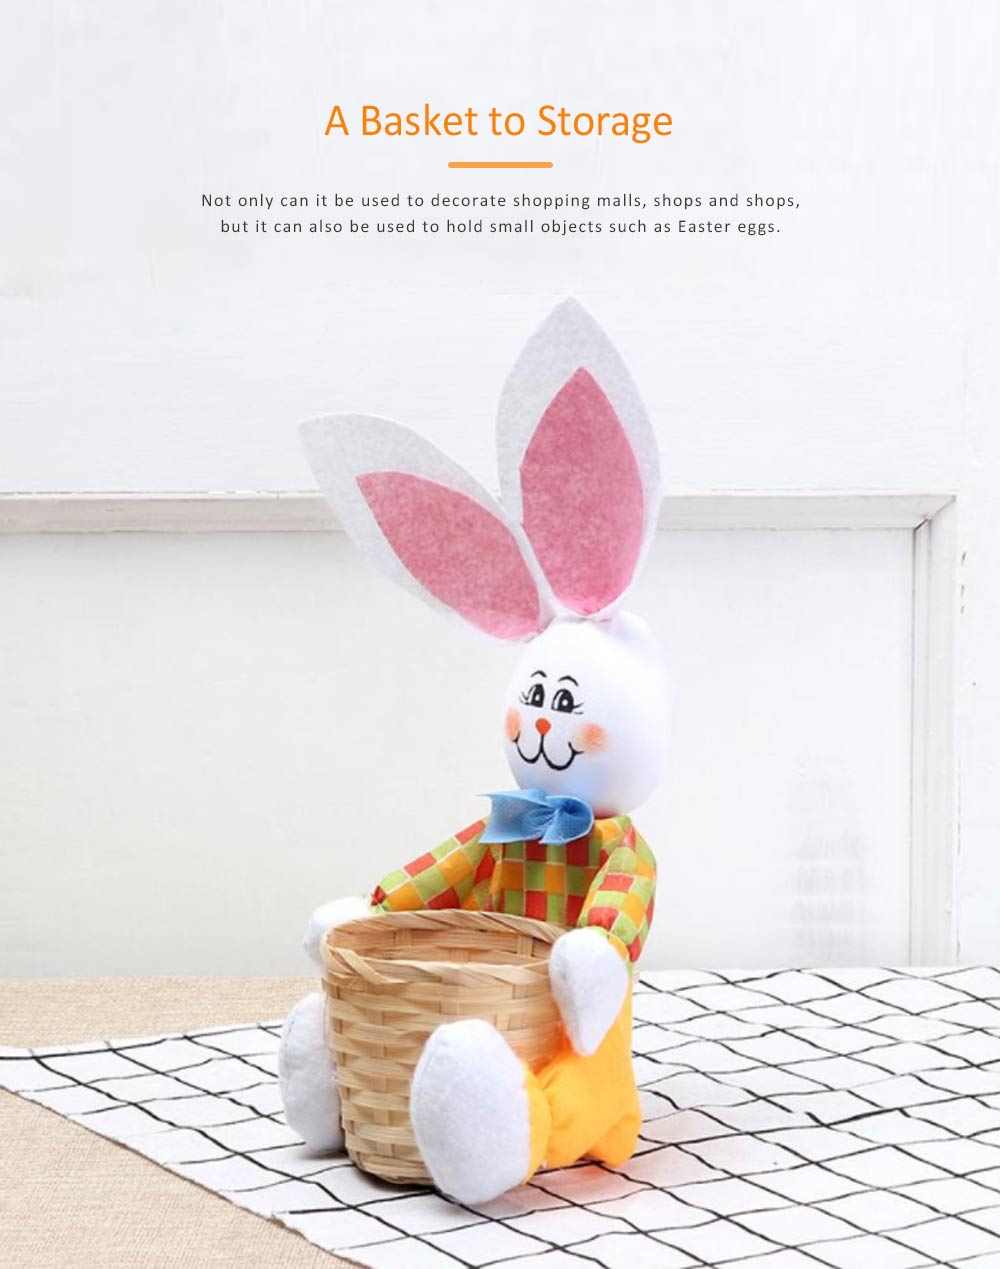 Easter Bunny DIY Handmade Basket, Bamboo Woven Rattan Weaving Basket with Cartoon Design for Storage 4